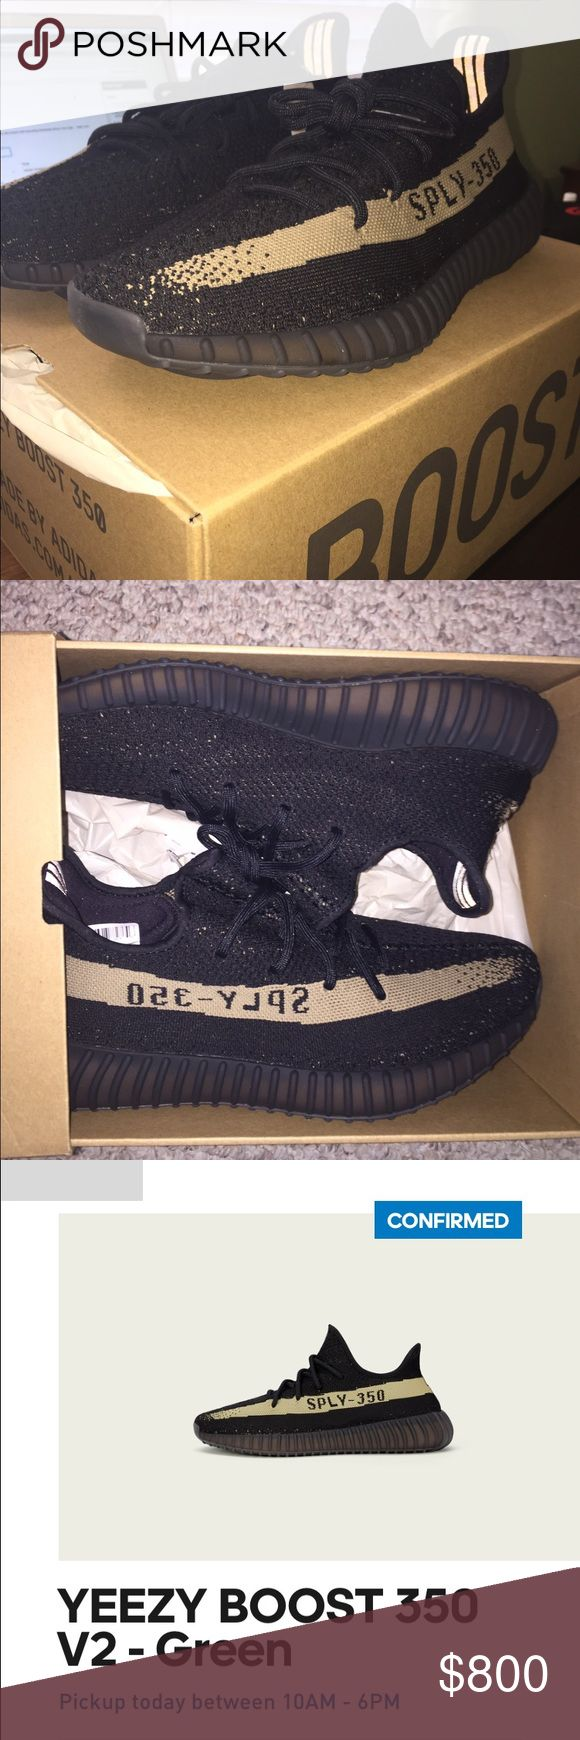 adidas yeezy black and white raffle yeezy boost 350 v2 adidas confirmed